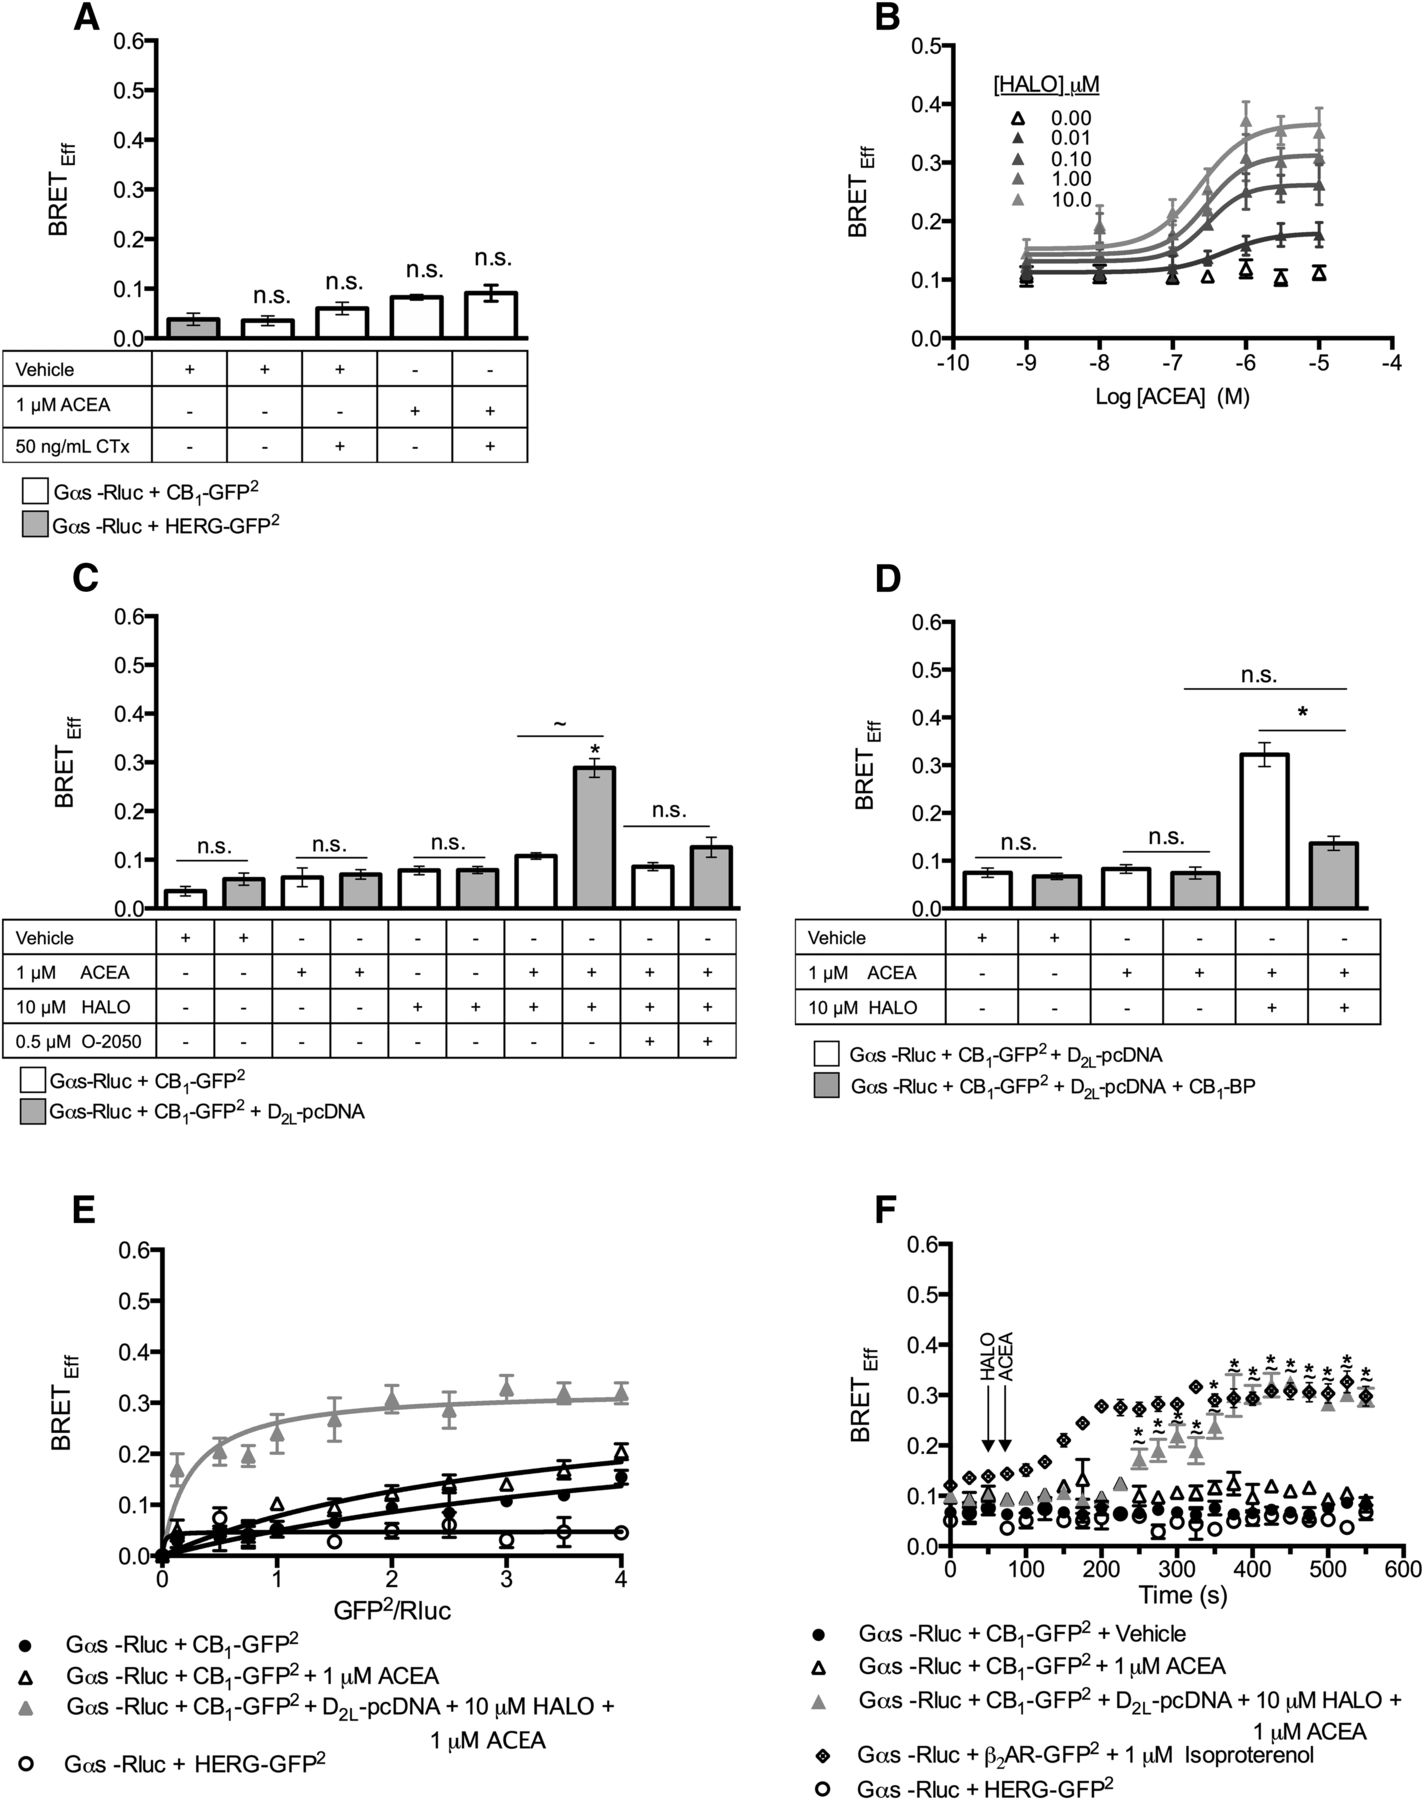 Antagonism of Dopamine Receptor 2 Long Affects Cannabinoid